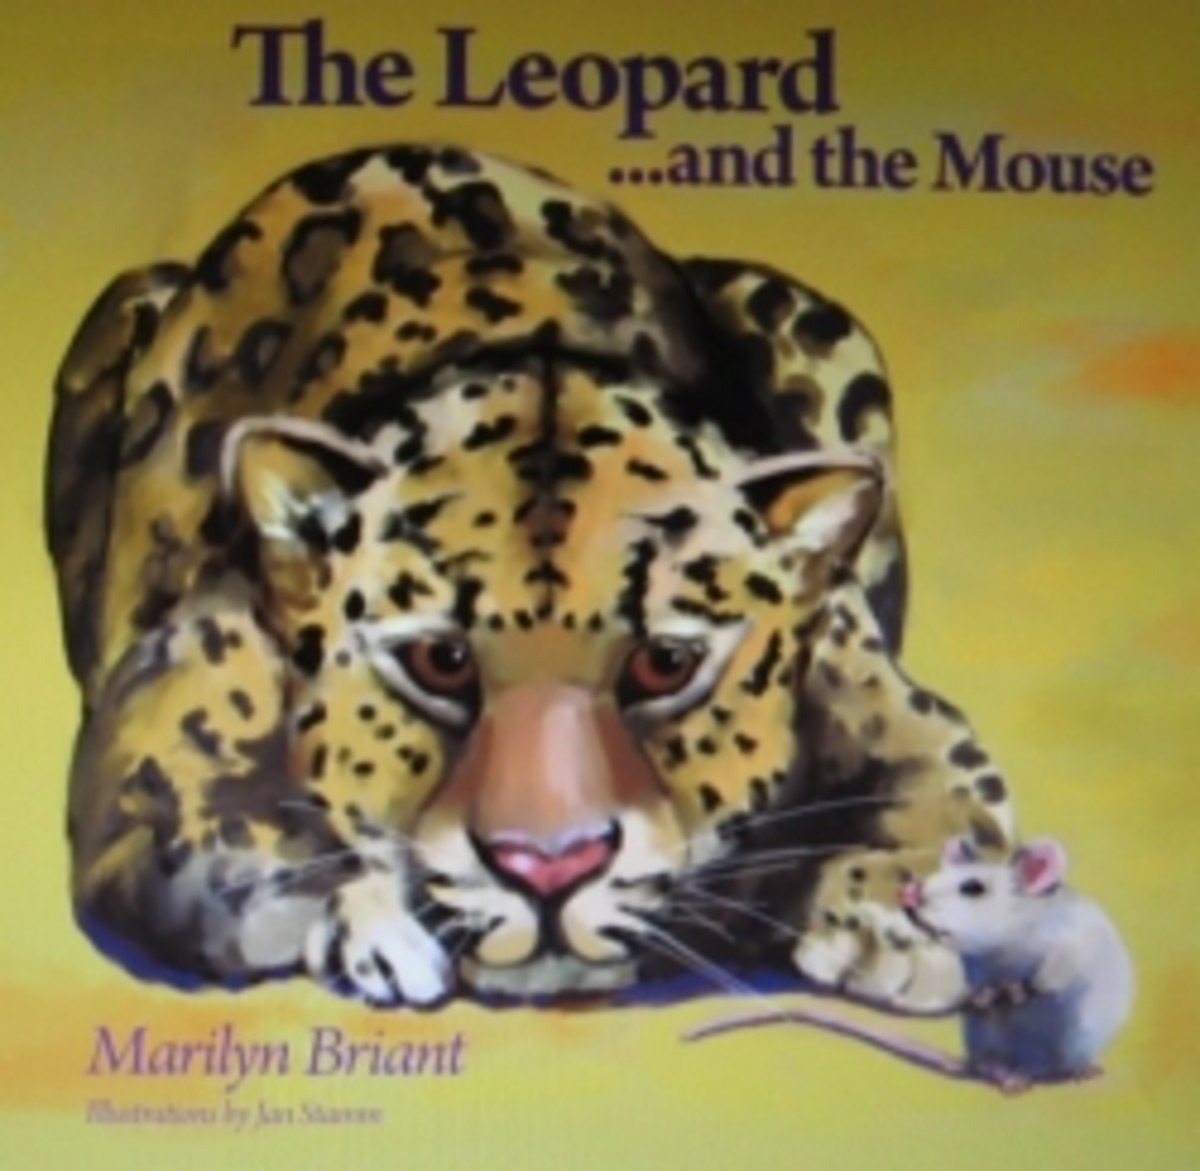 The Leopard and the Mouse by Marilyn Briant